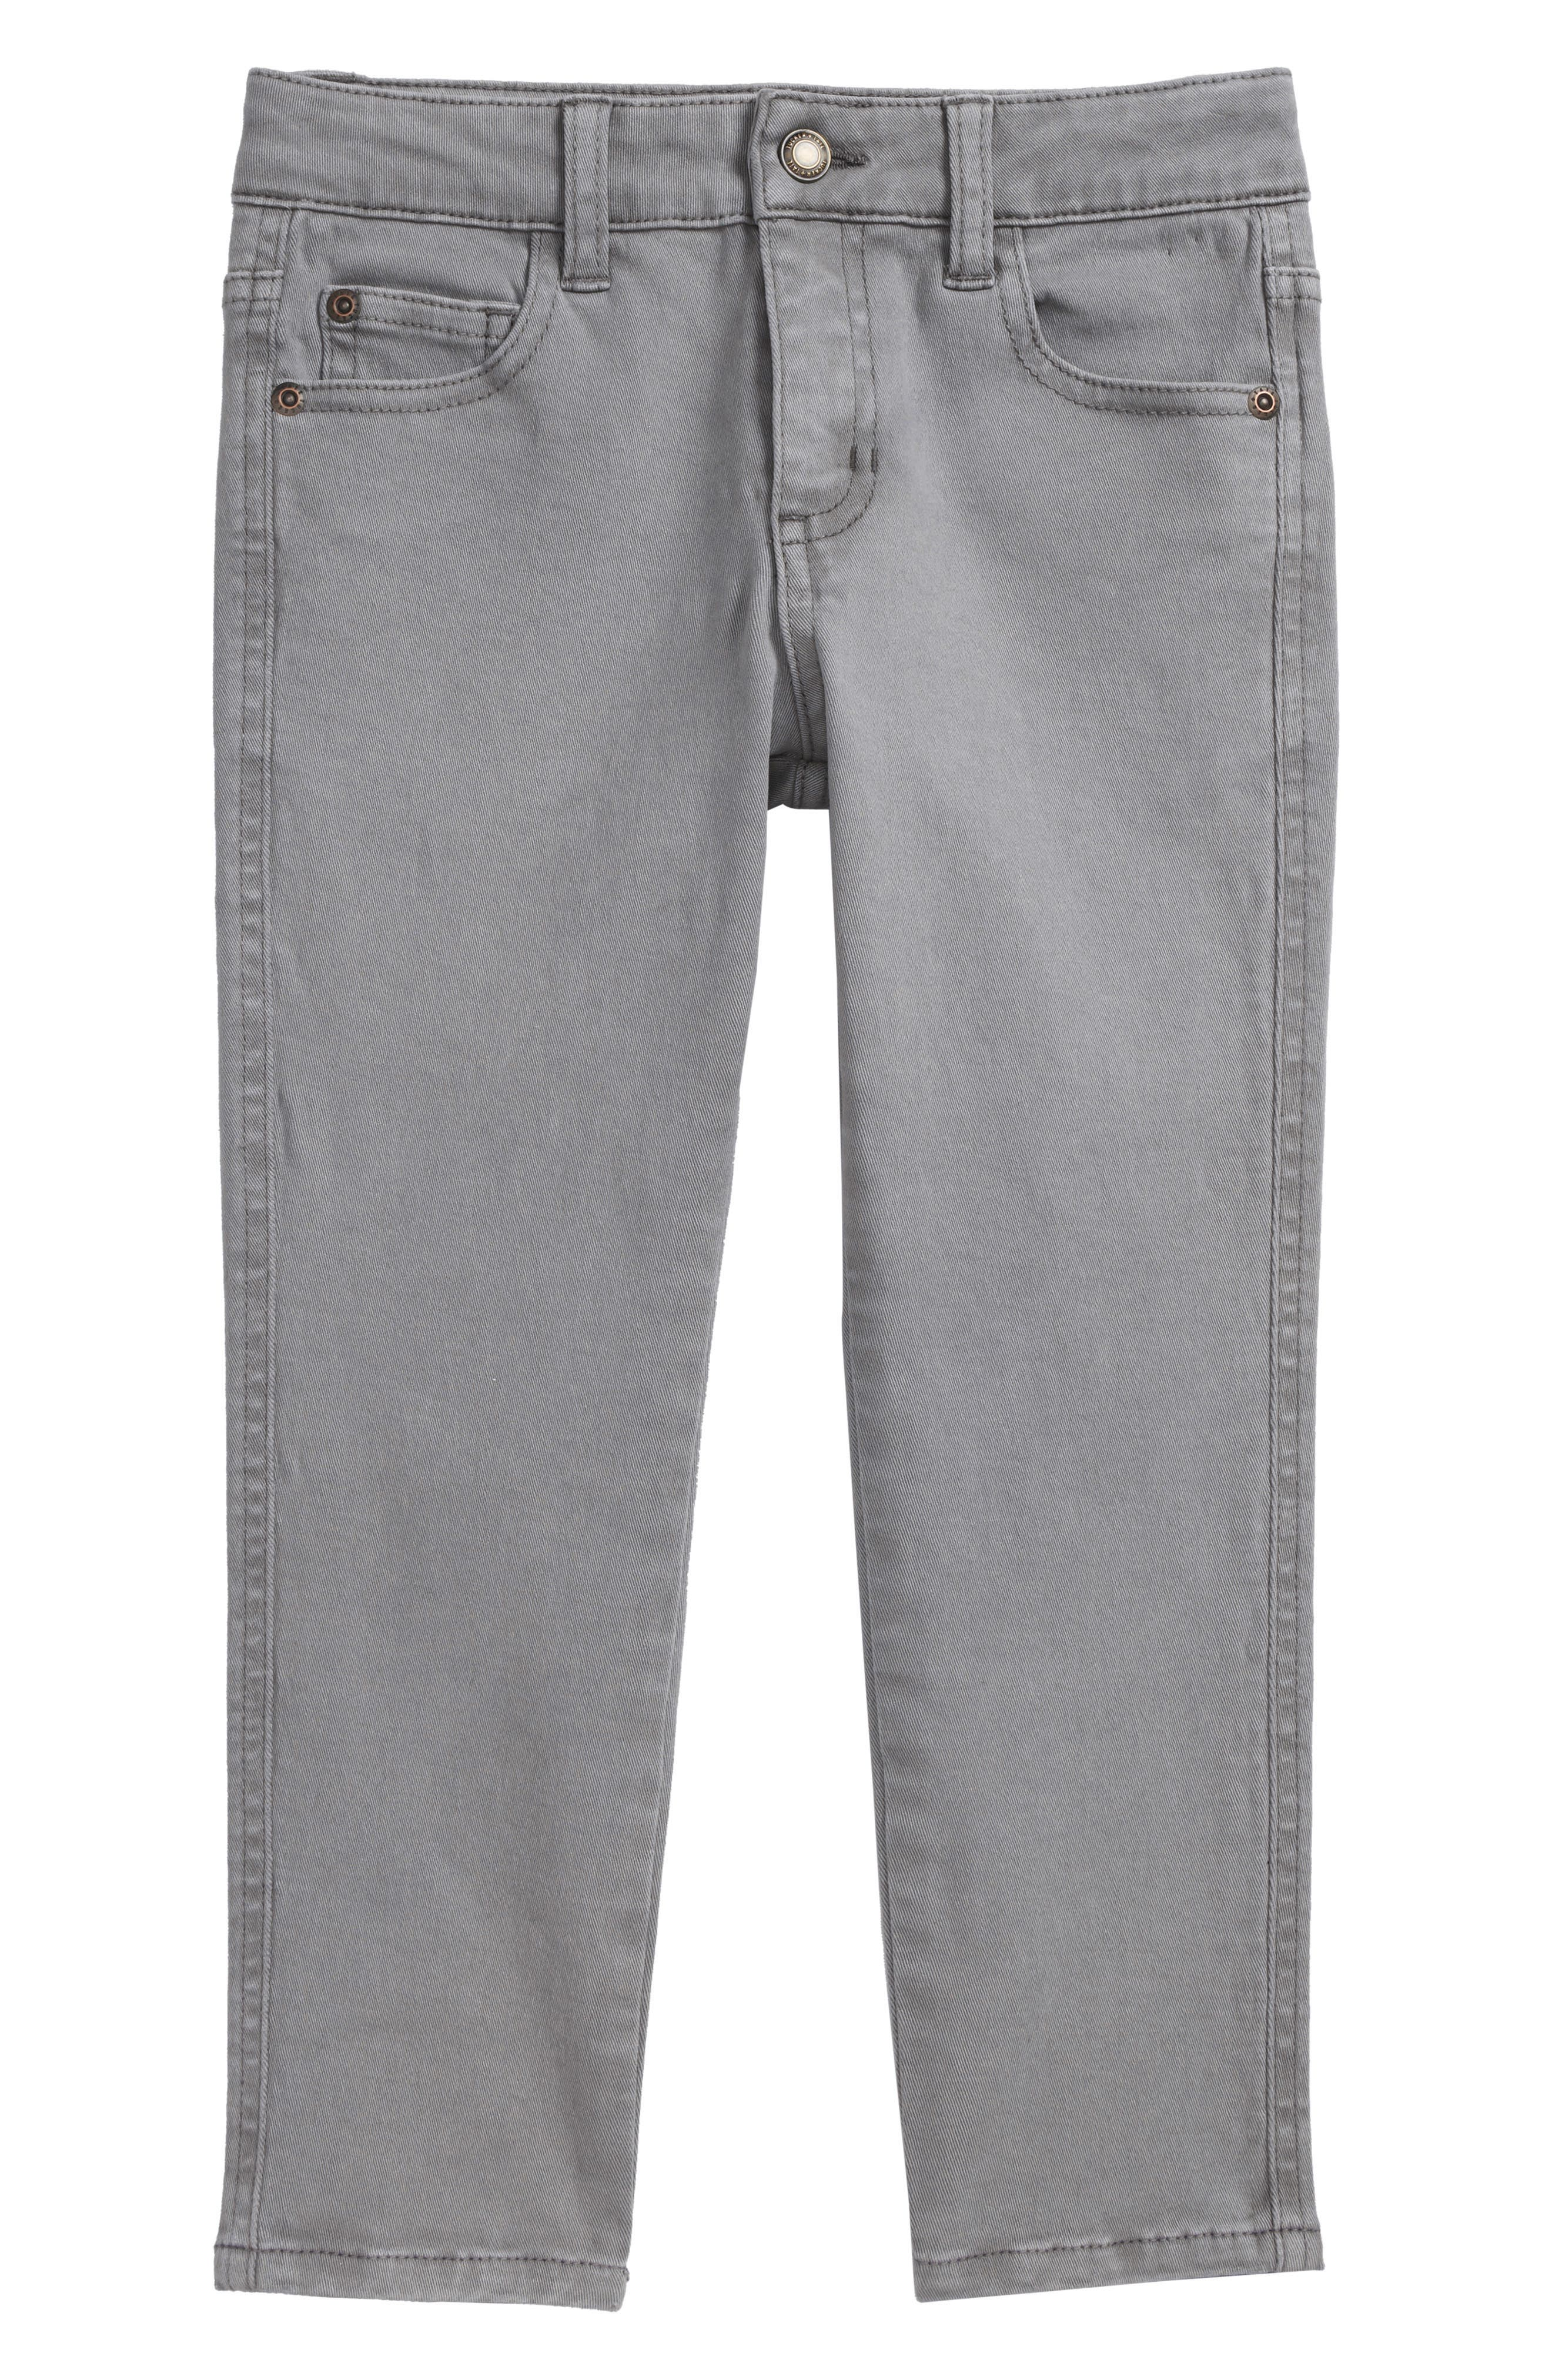 Stretch Chino Pants,                         Main,                         color, 030